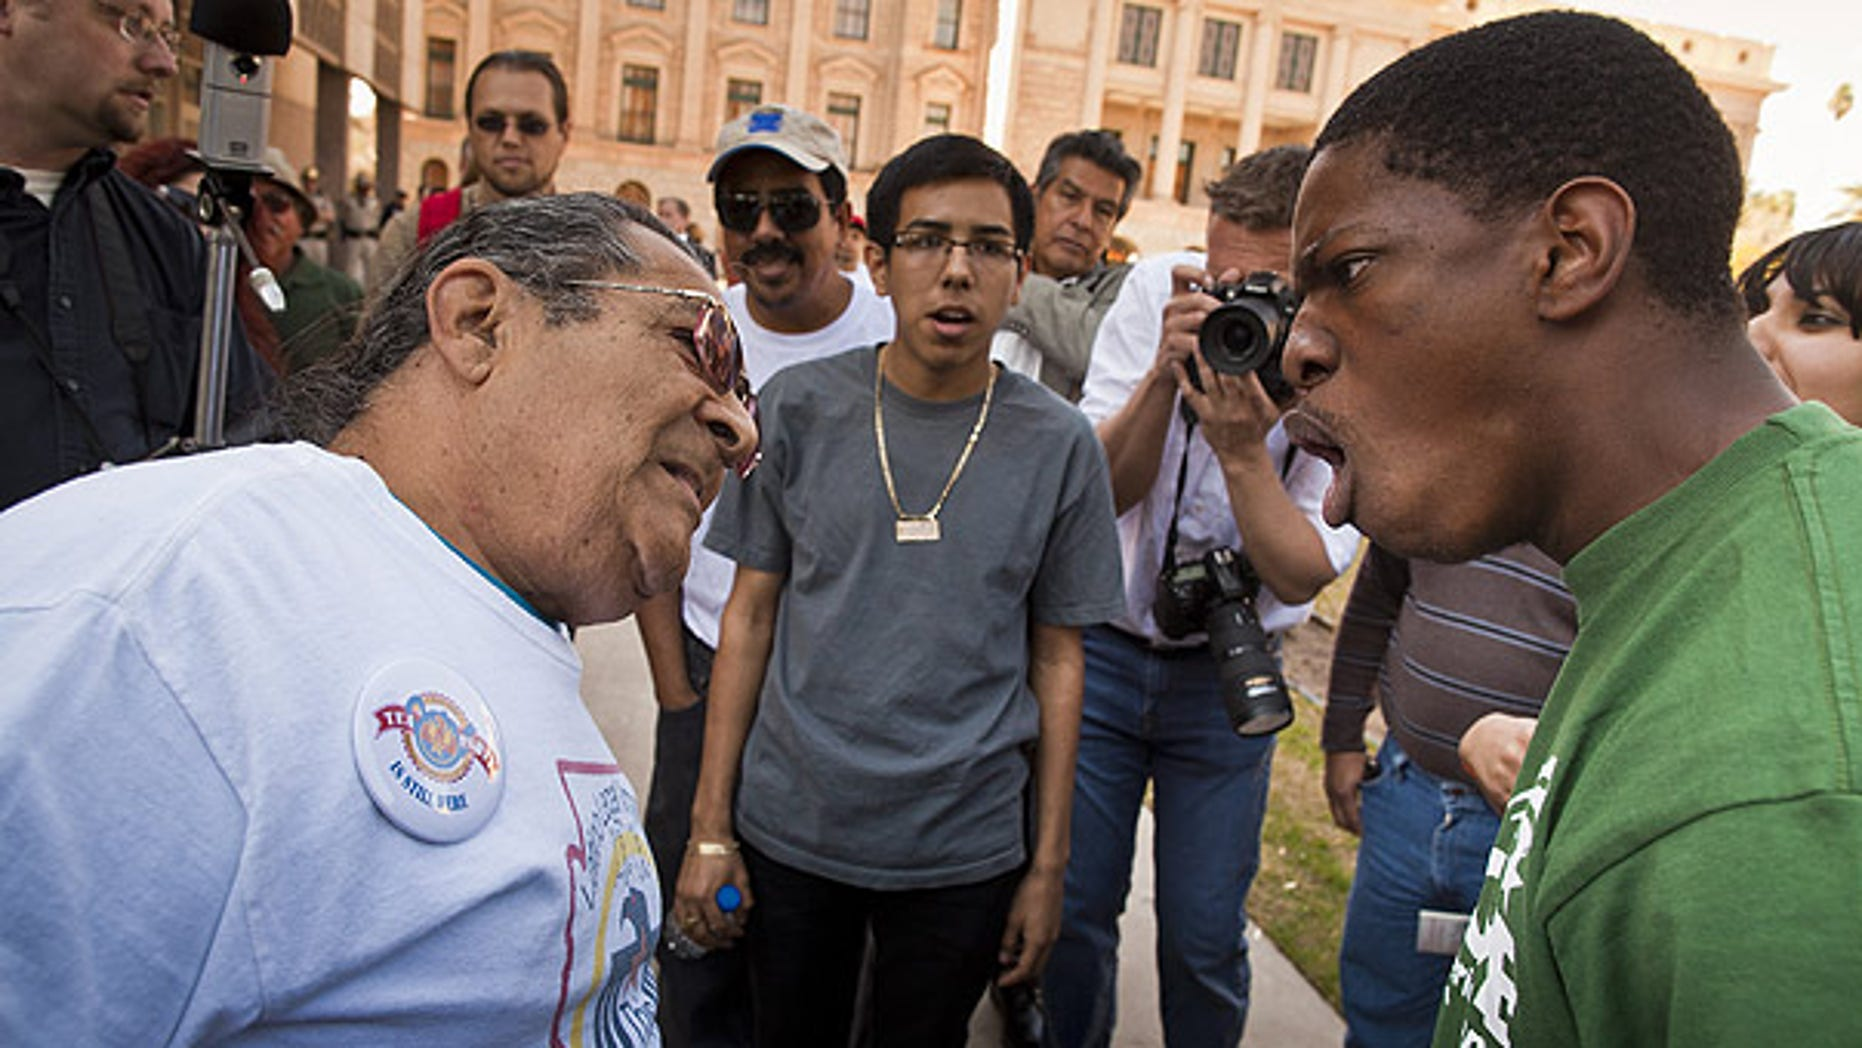 Feb. 22: A supporter and opponent of illegal immigrant birthrights debate at the State Capitol in Phoenix.